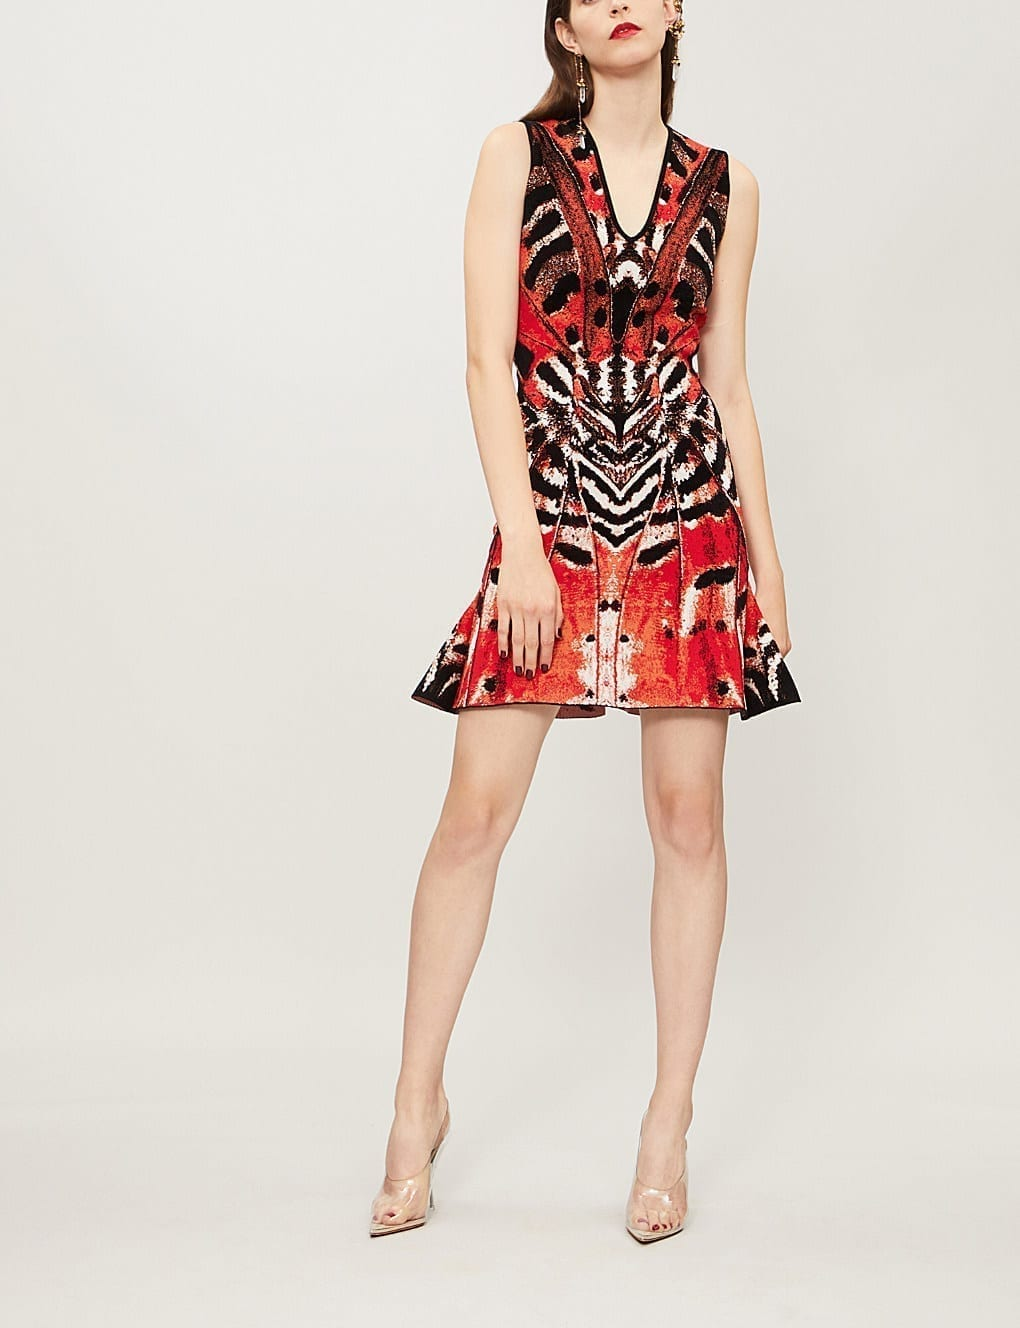 ALEXANDER MCQUEEN Butterfly Jacquard Mini Multicolored Dress